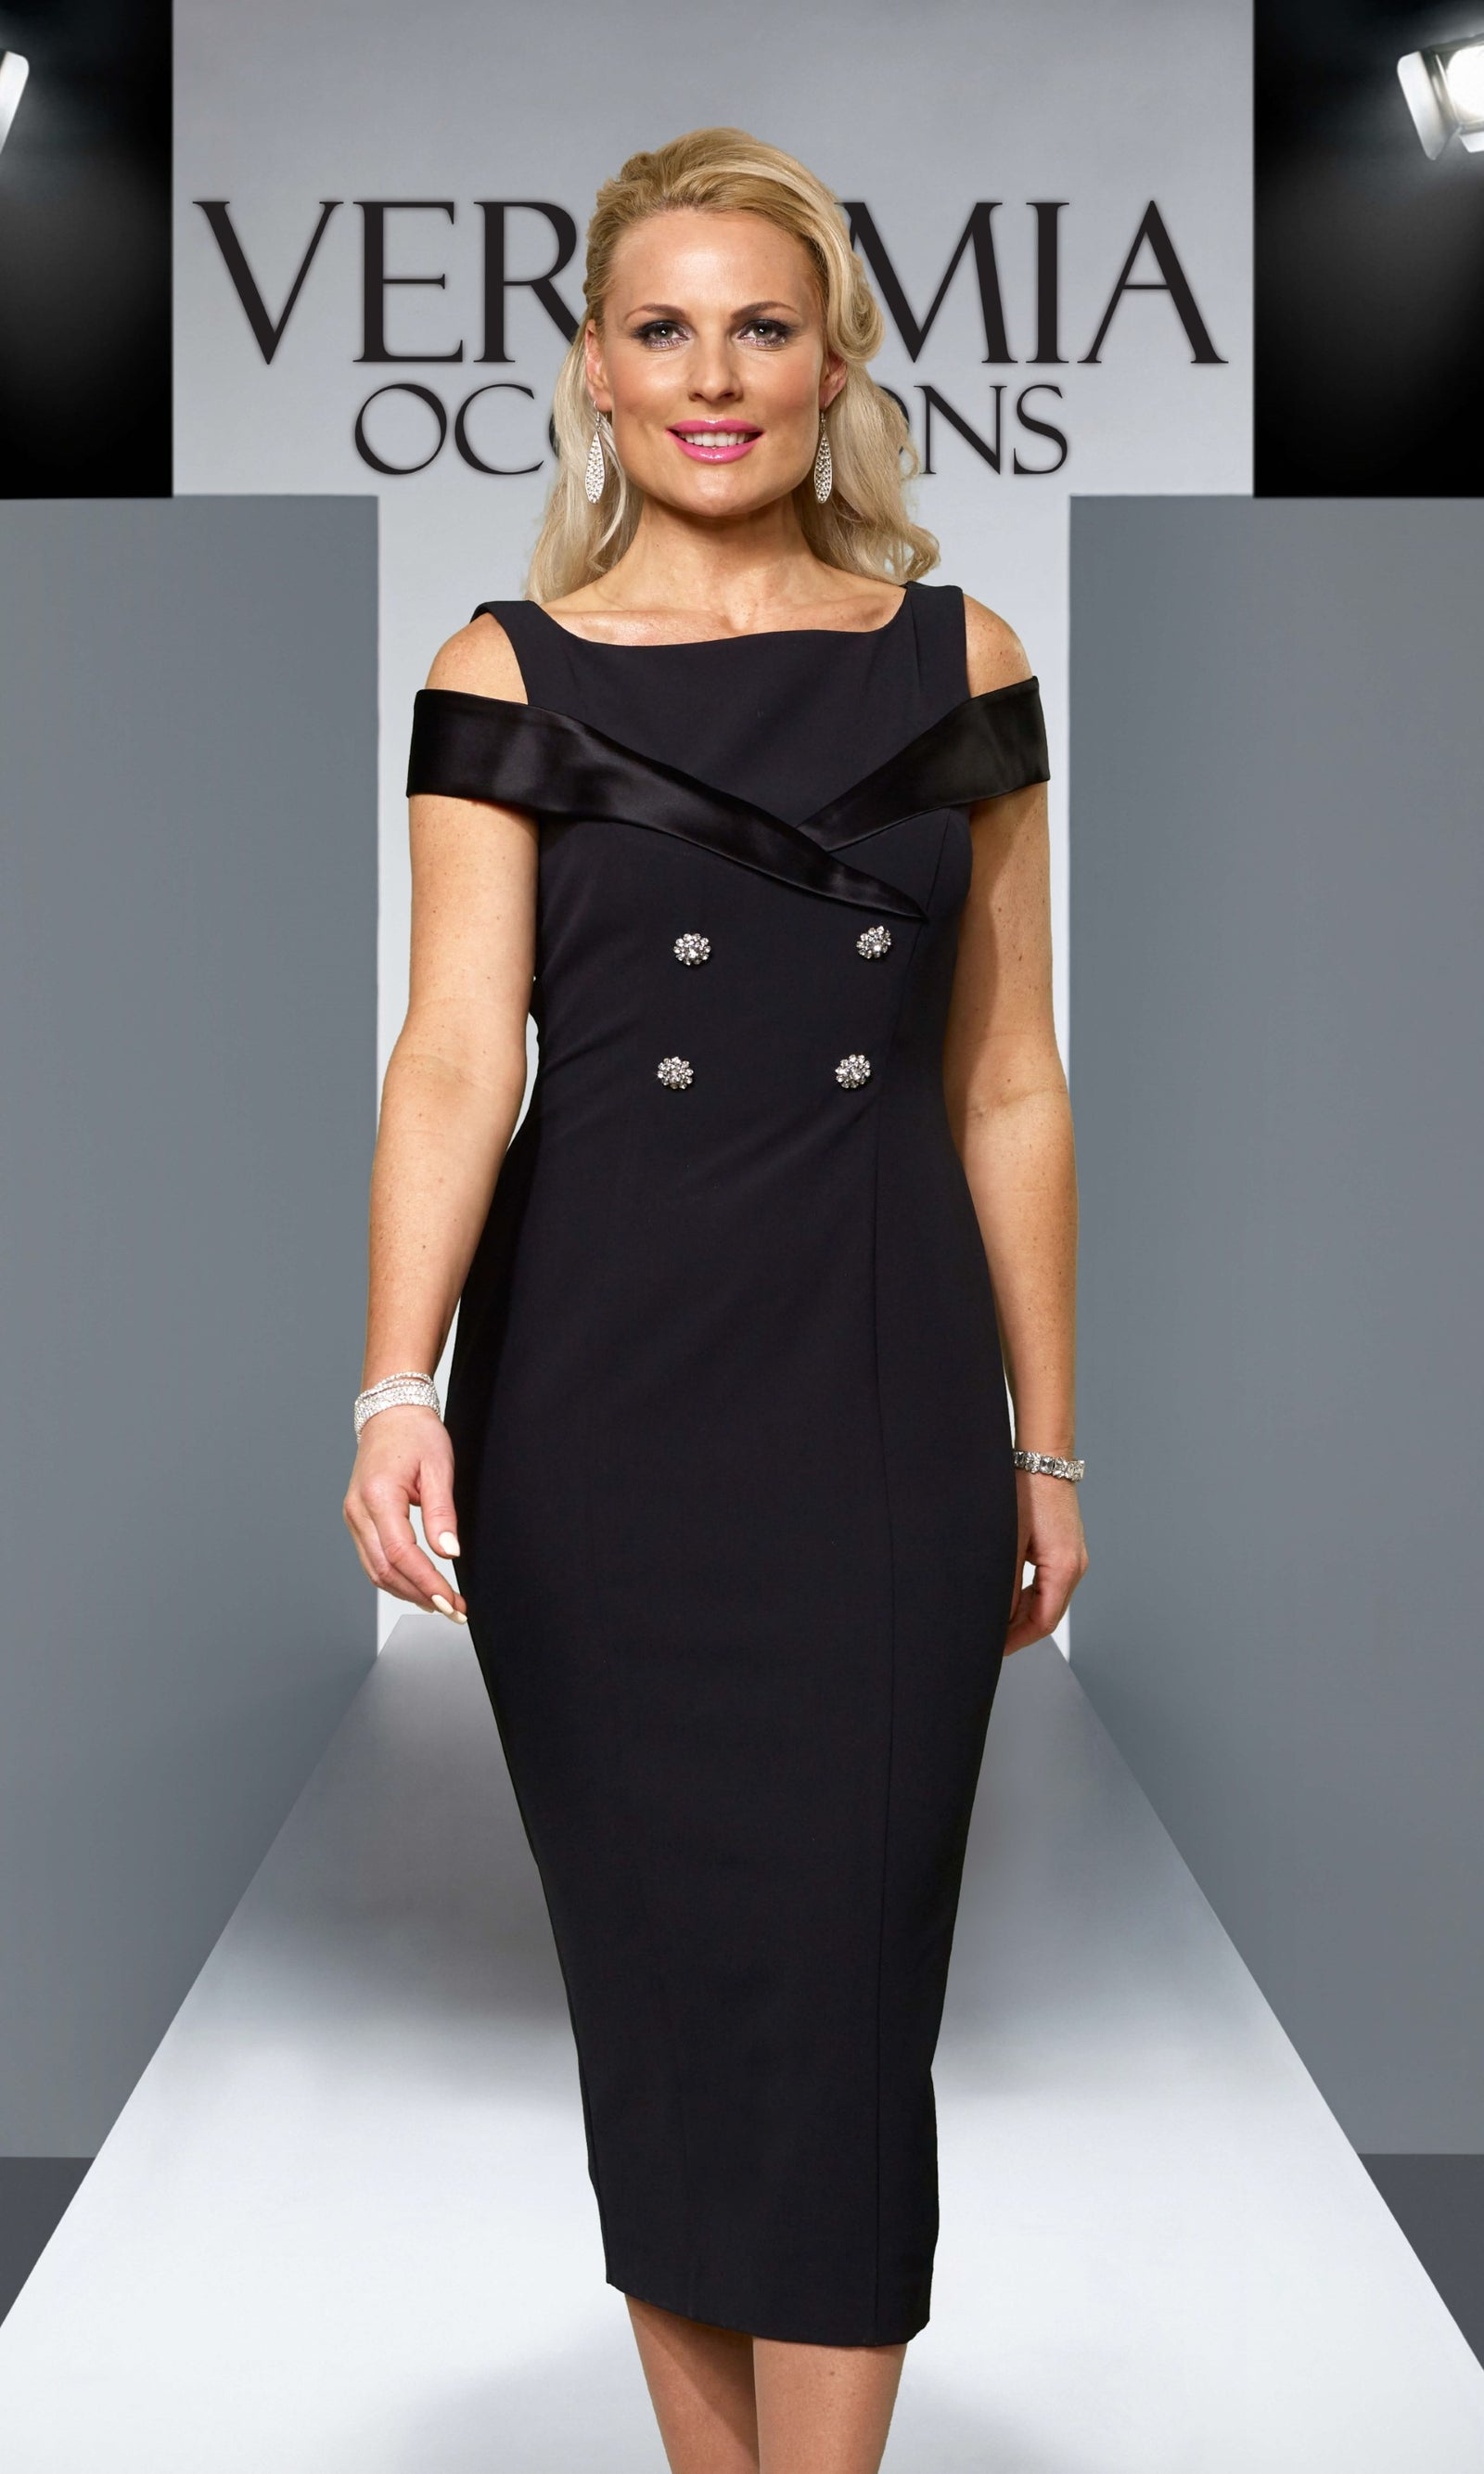 VO79G Black Veromia Occasions Tuxedo Inspired Dress